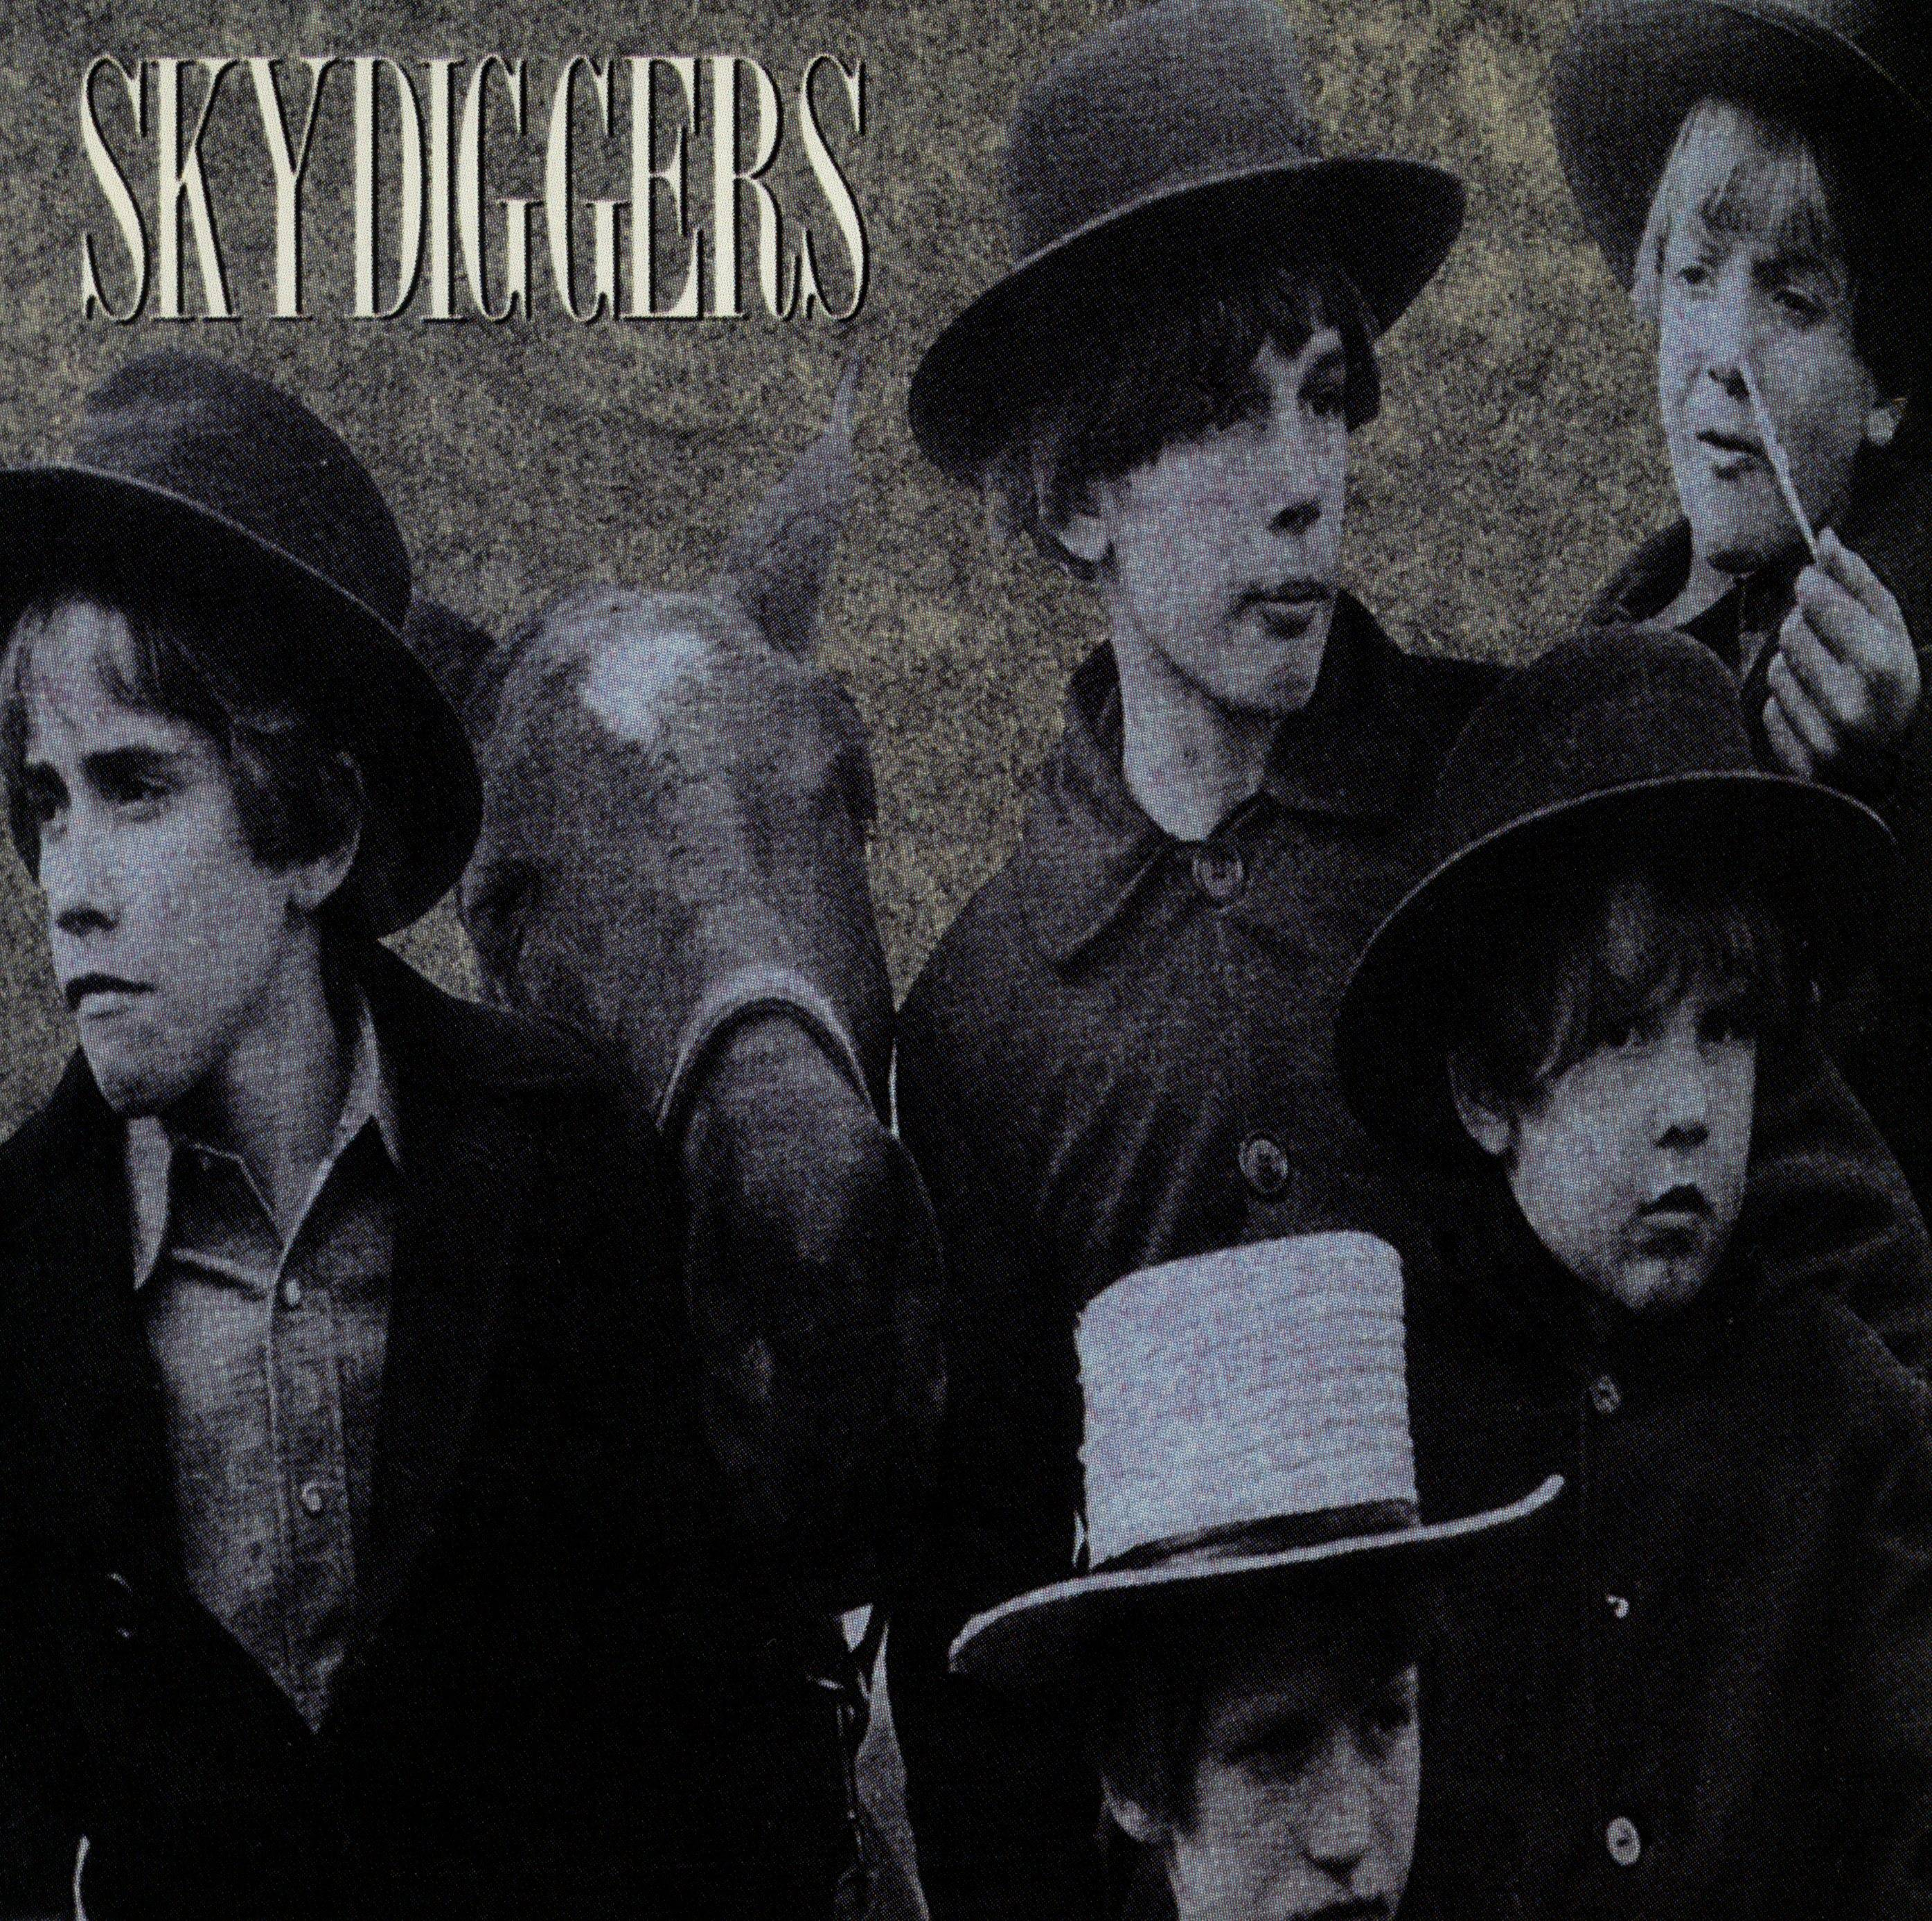 Skydiggers - Just Over This Mountain